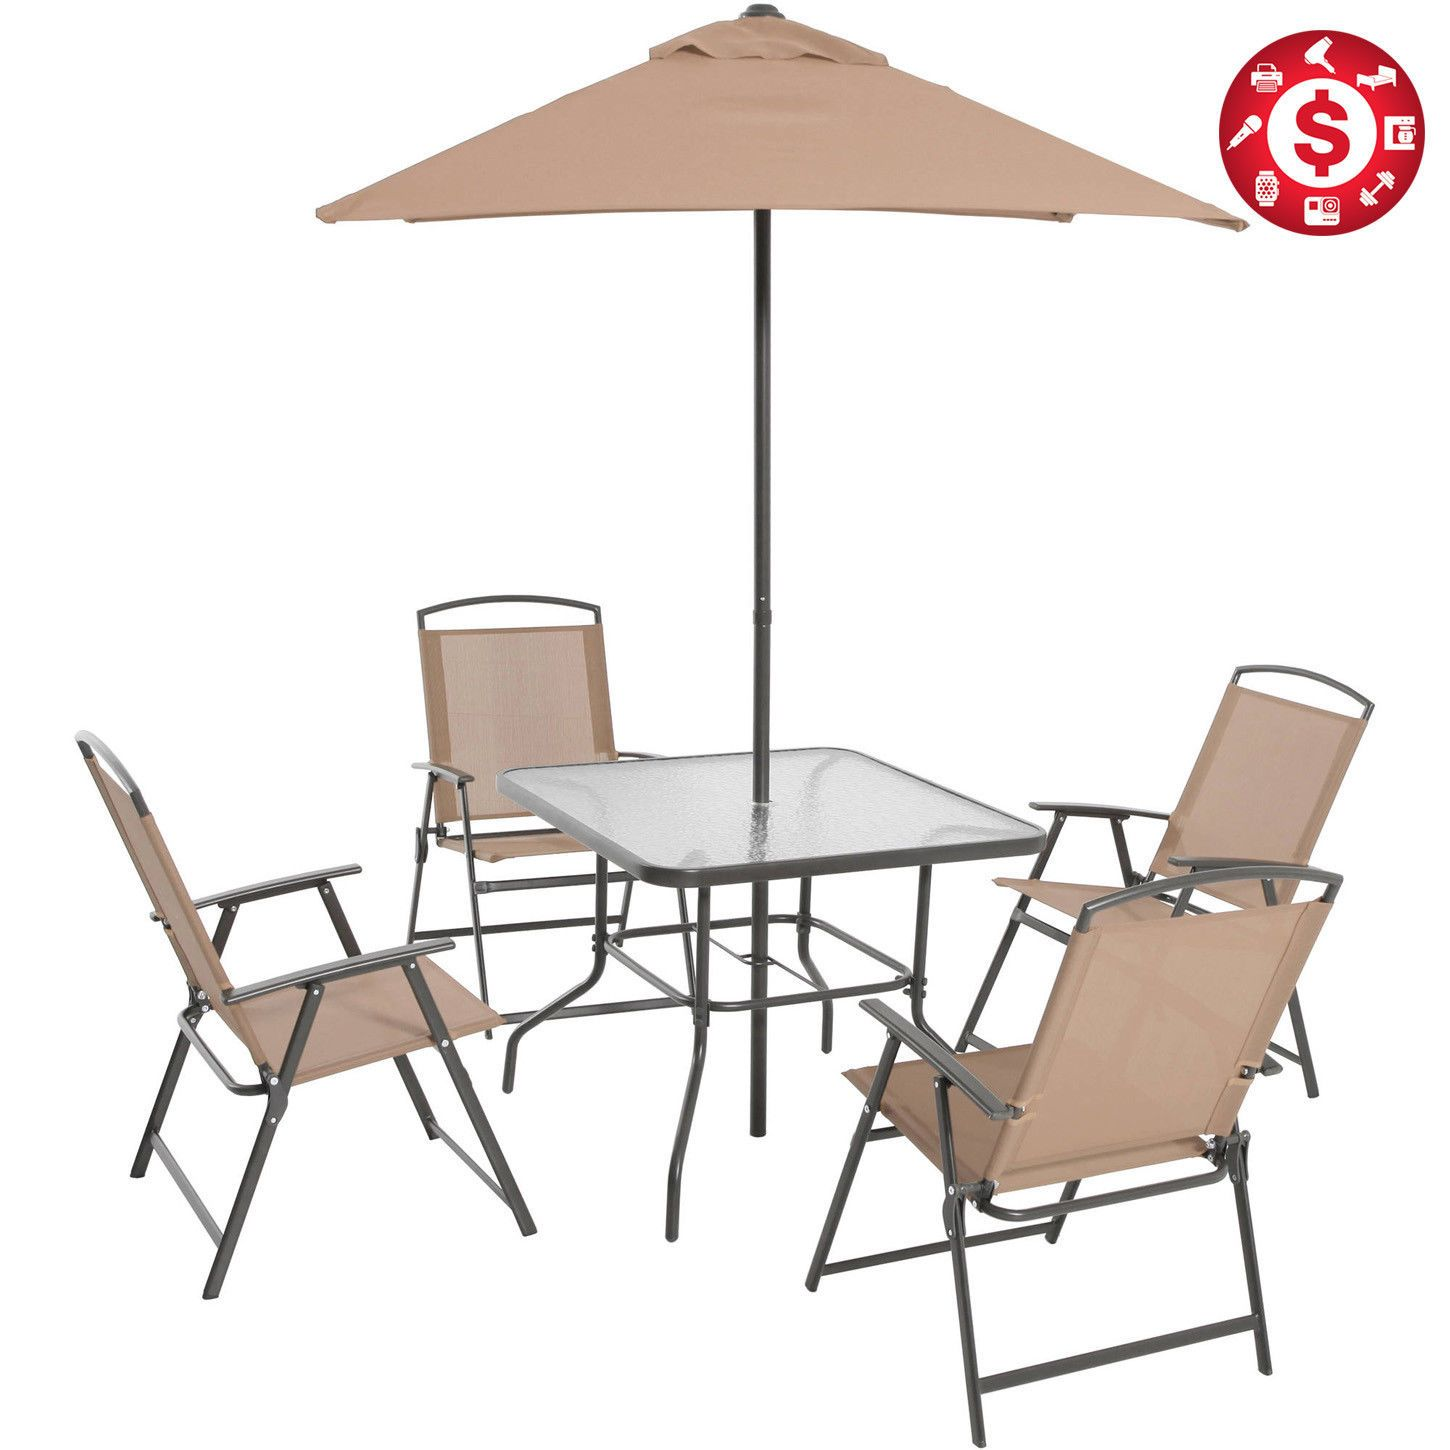 6 Piece Patio Dining Set Folding Table Chairs Umbrella Outdoor